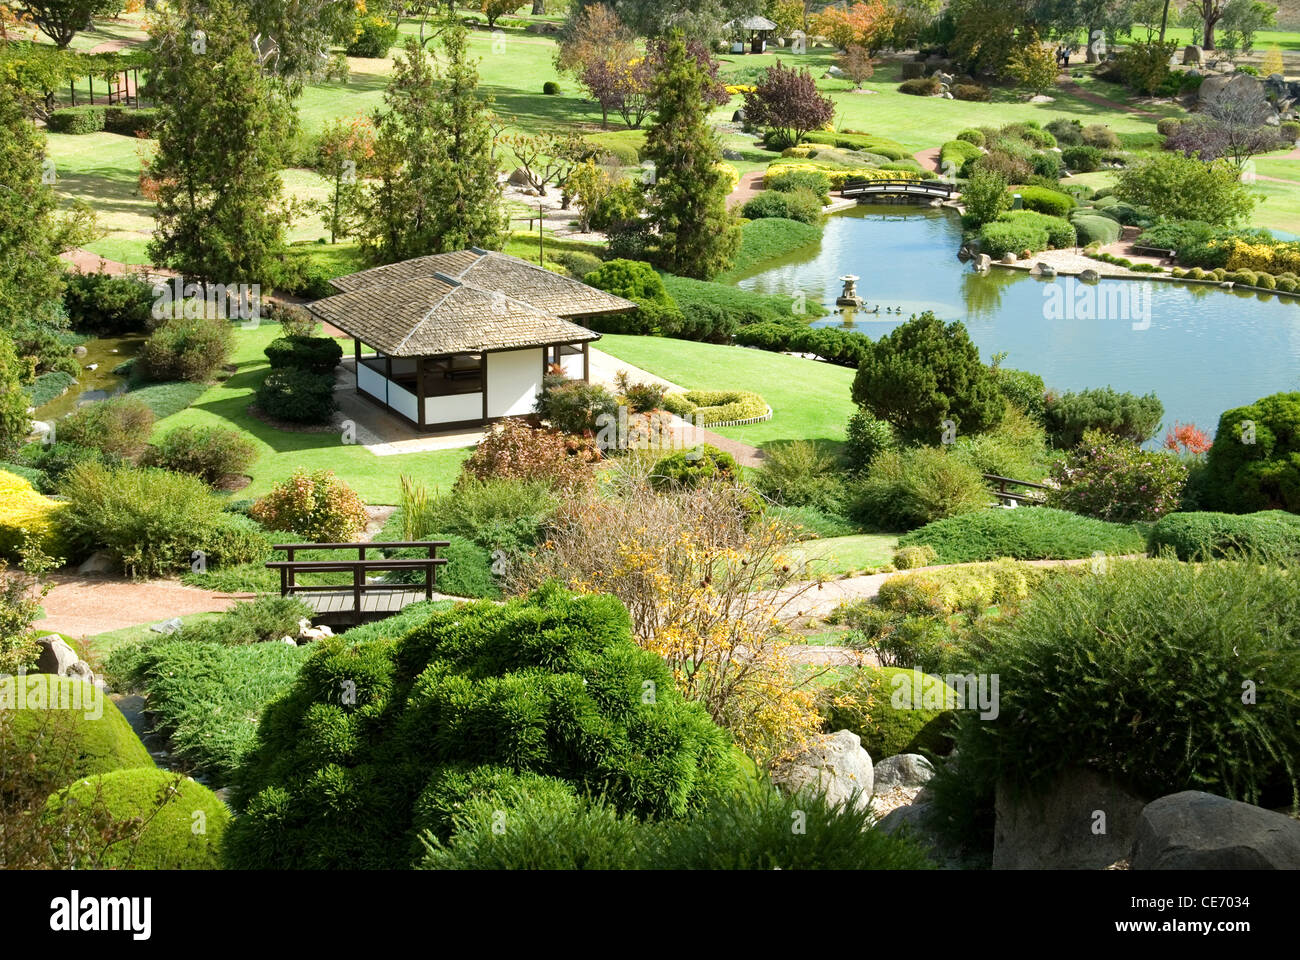 A scene from a Japanese Garden in Cowra, New South Wales, Australia - Stock Image